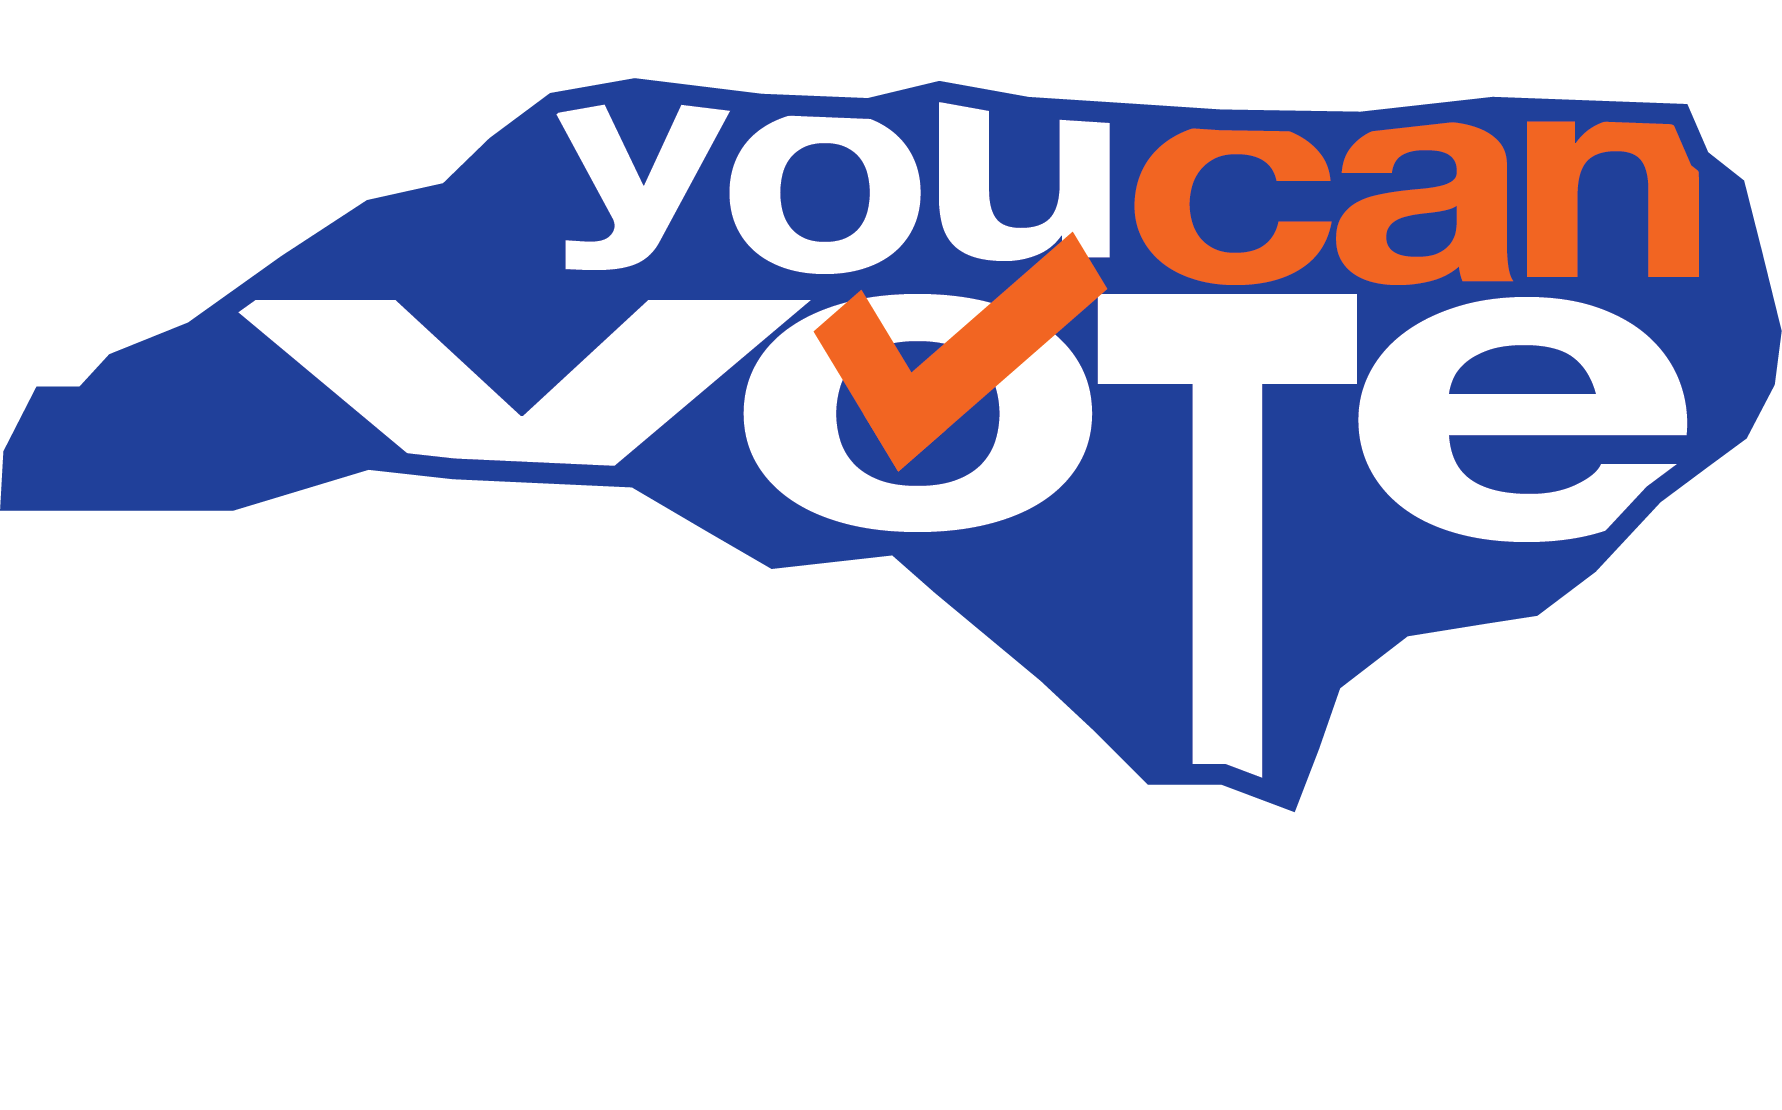 Donate to empower voters!